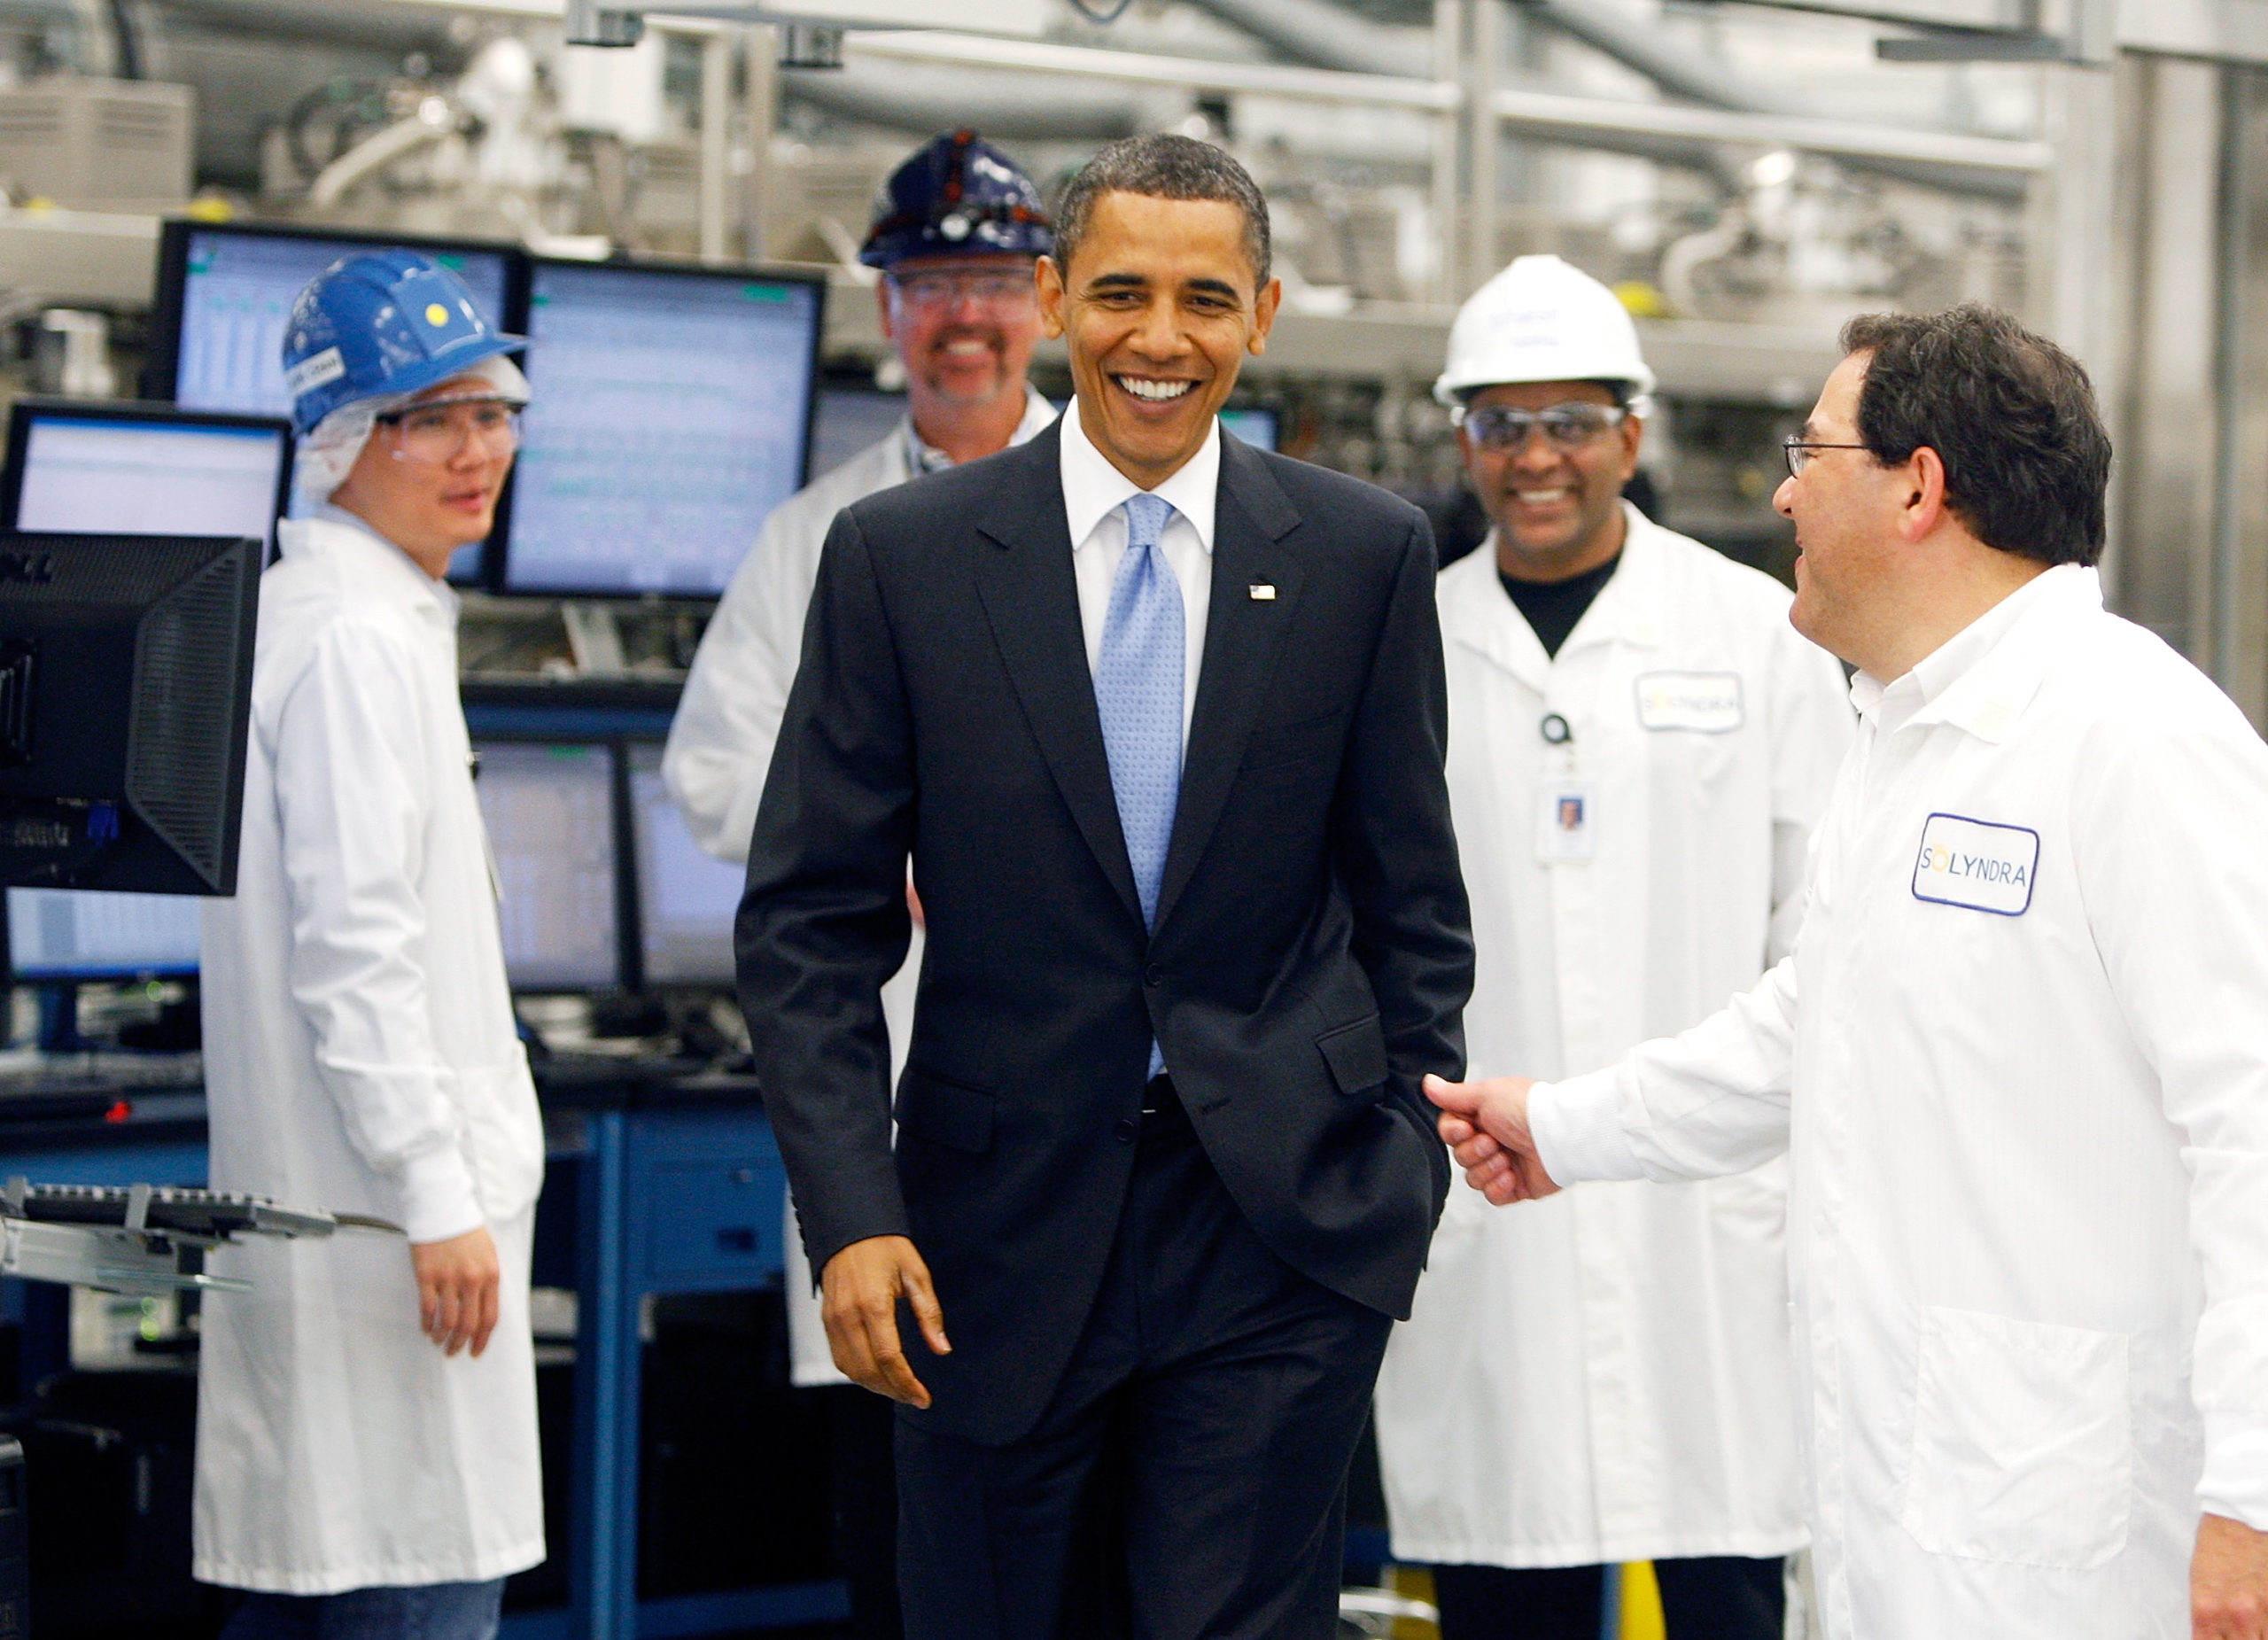 FREMONT, CA - MAY 26: U.S. President Barack Obama smiles during a tour of the Solyndra solar panel company May 26, 2010 in Fremont, California. President Obama toured Solyndra Inc., a growing solar power equipment facility that is adding jobs as they expand their operation. (Photo by Paul Chinn-Pool/Getty Images)